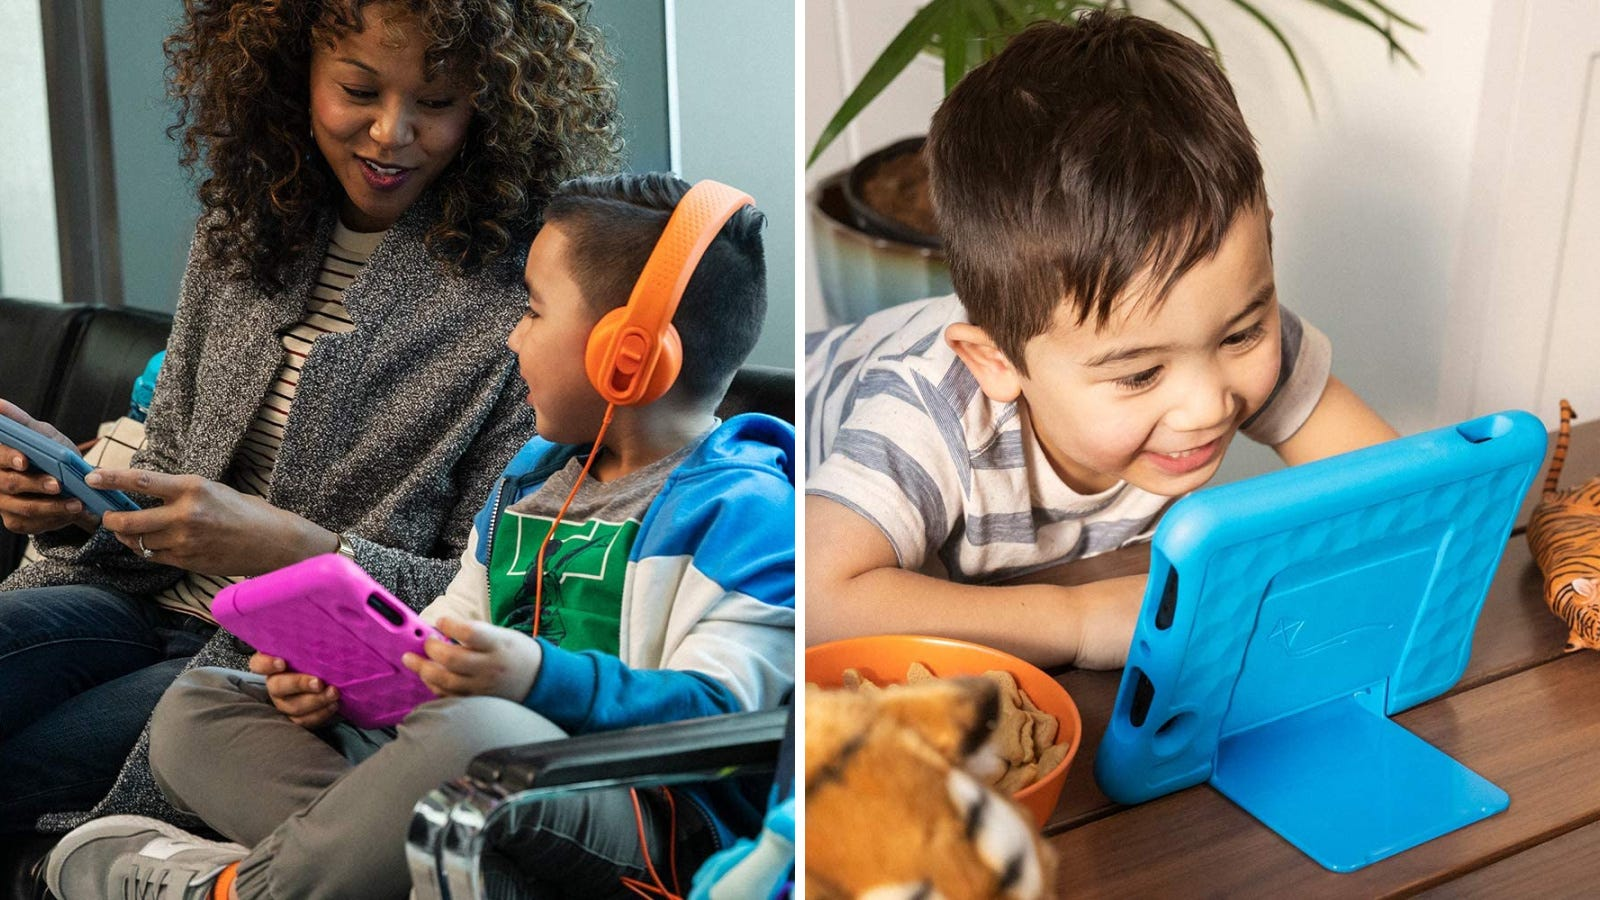 Two images: The left image features a mother and her son using their tablets while waiting to board a plane, and the right image features a young child excitingly playing with a Kids fire tablet.